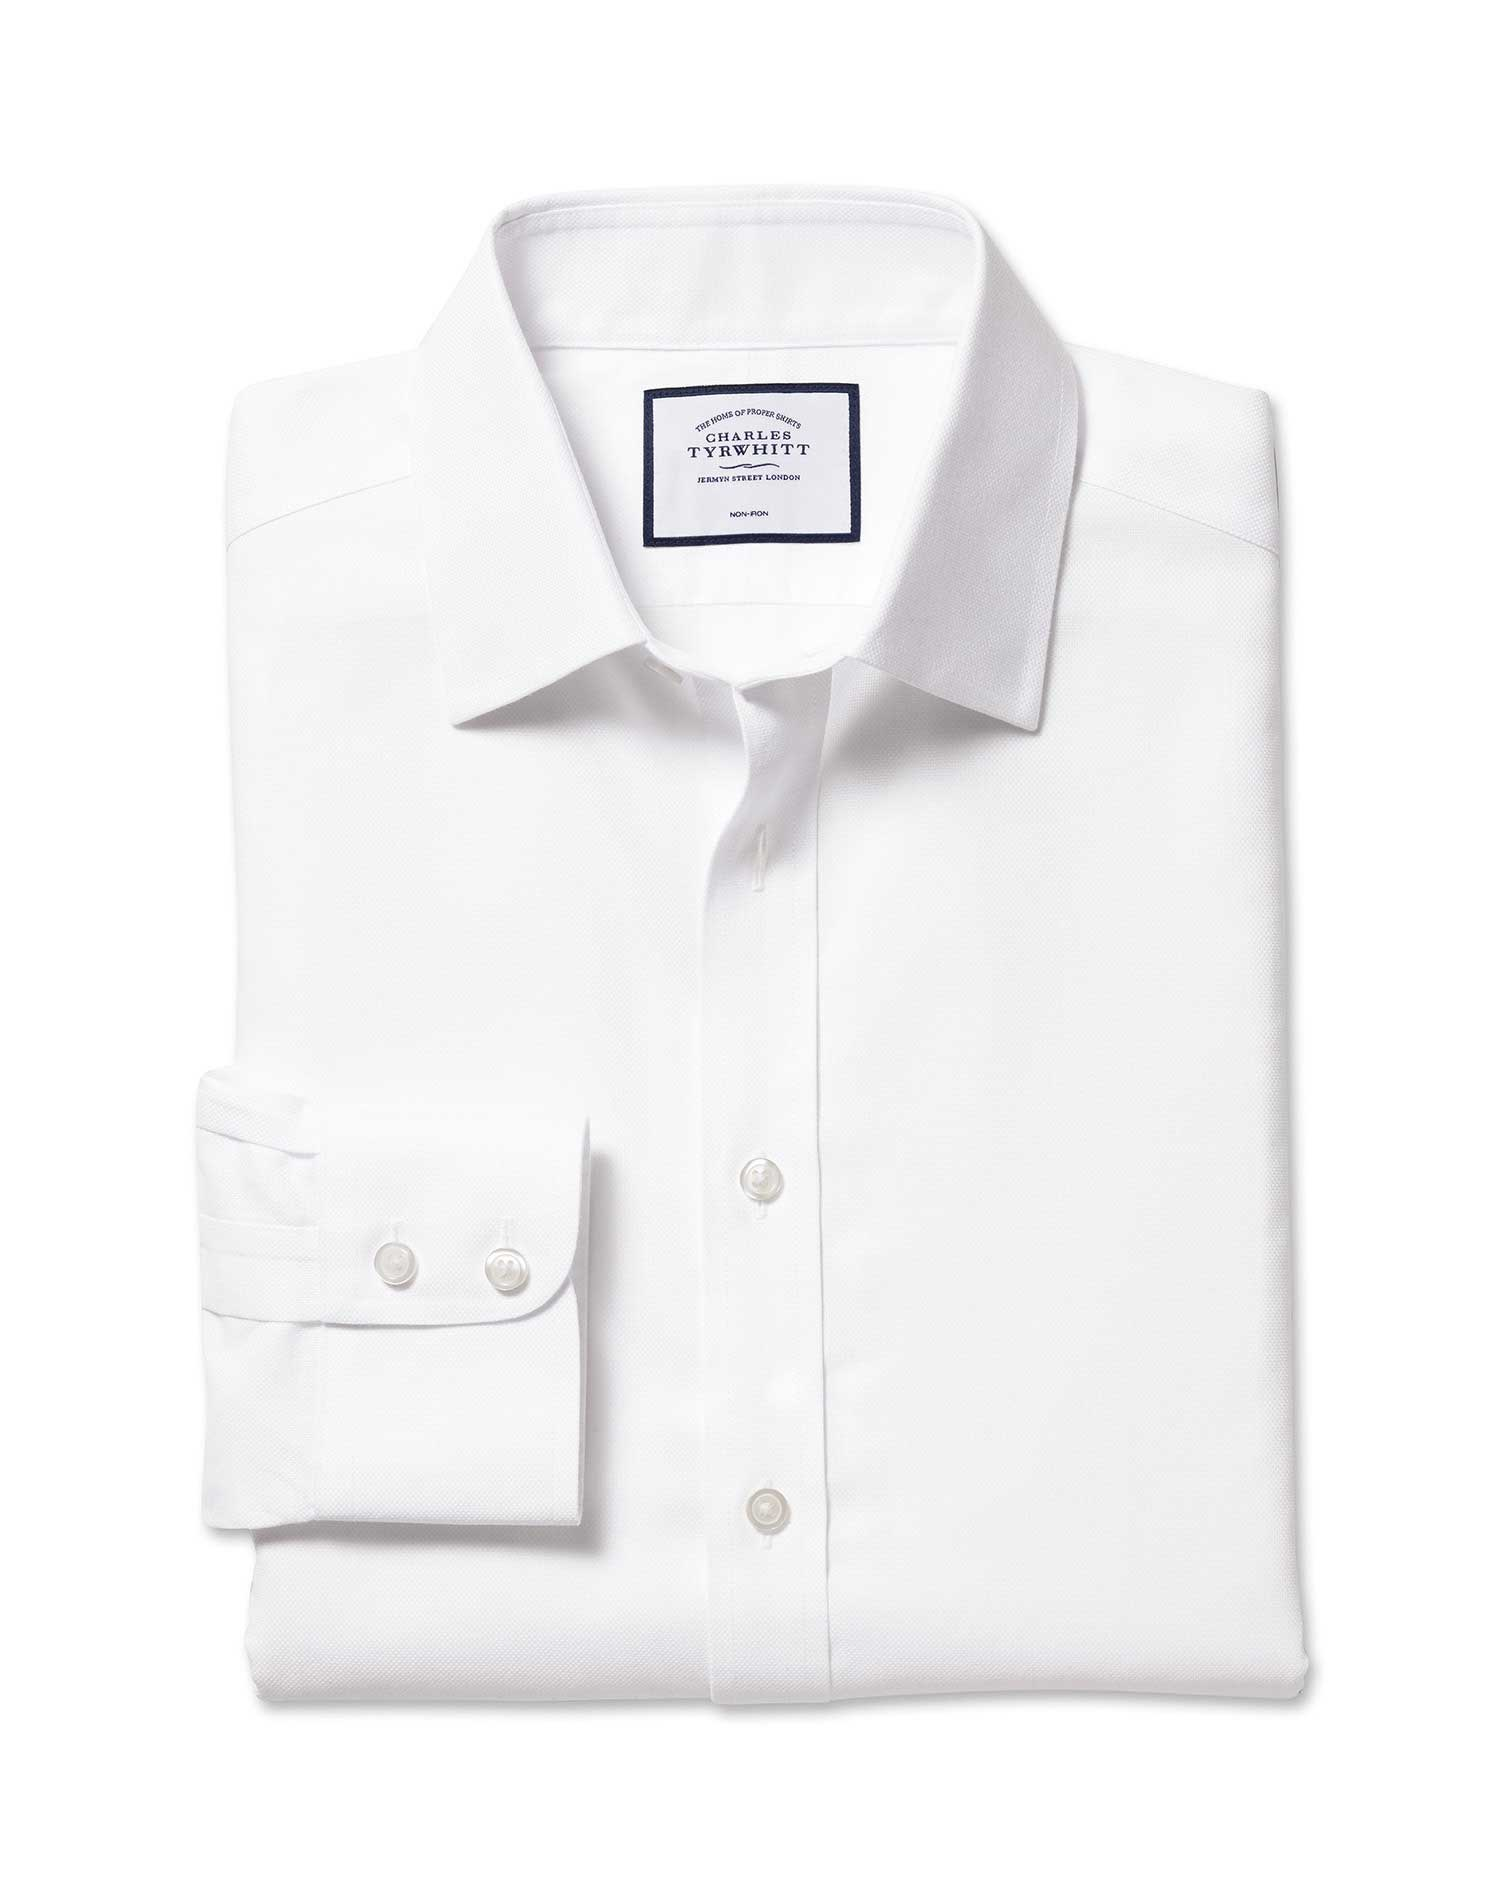 Slim Fit Non-Iron Royal Panama White Cotton Formal Shirt Double Cuff Size 16/35 by Charles Tyrwhitt